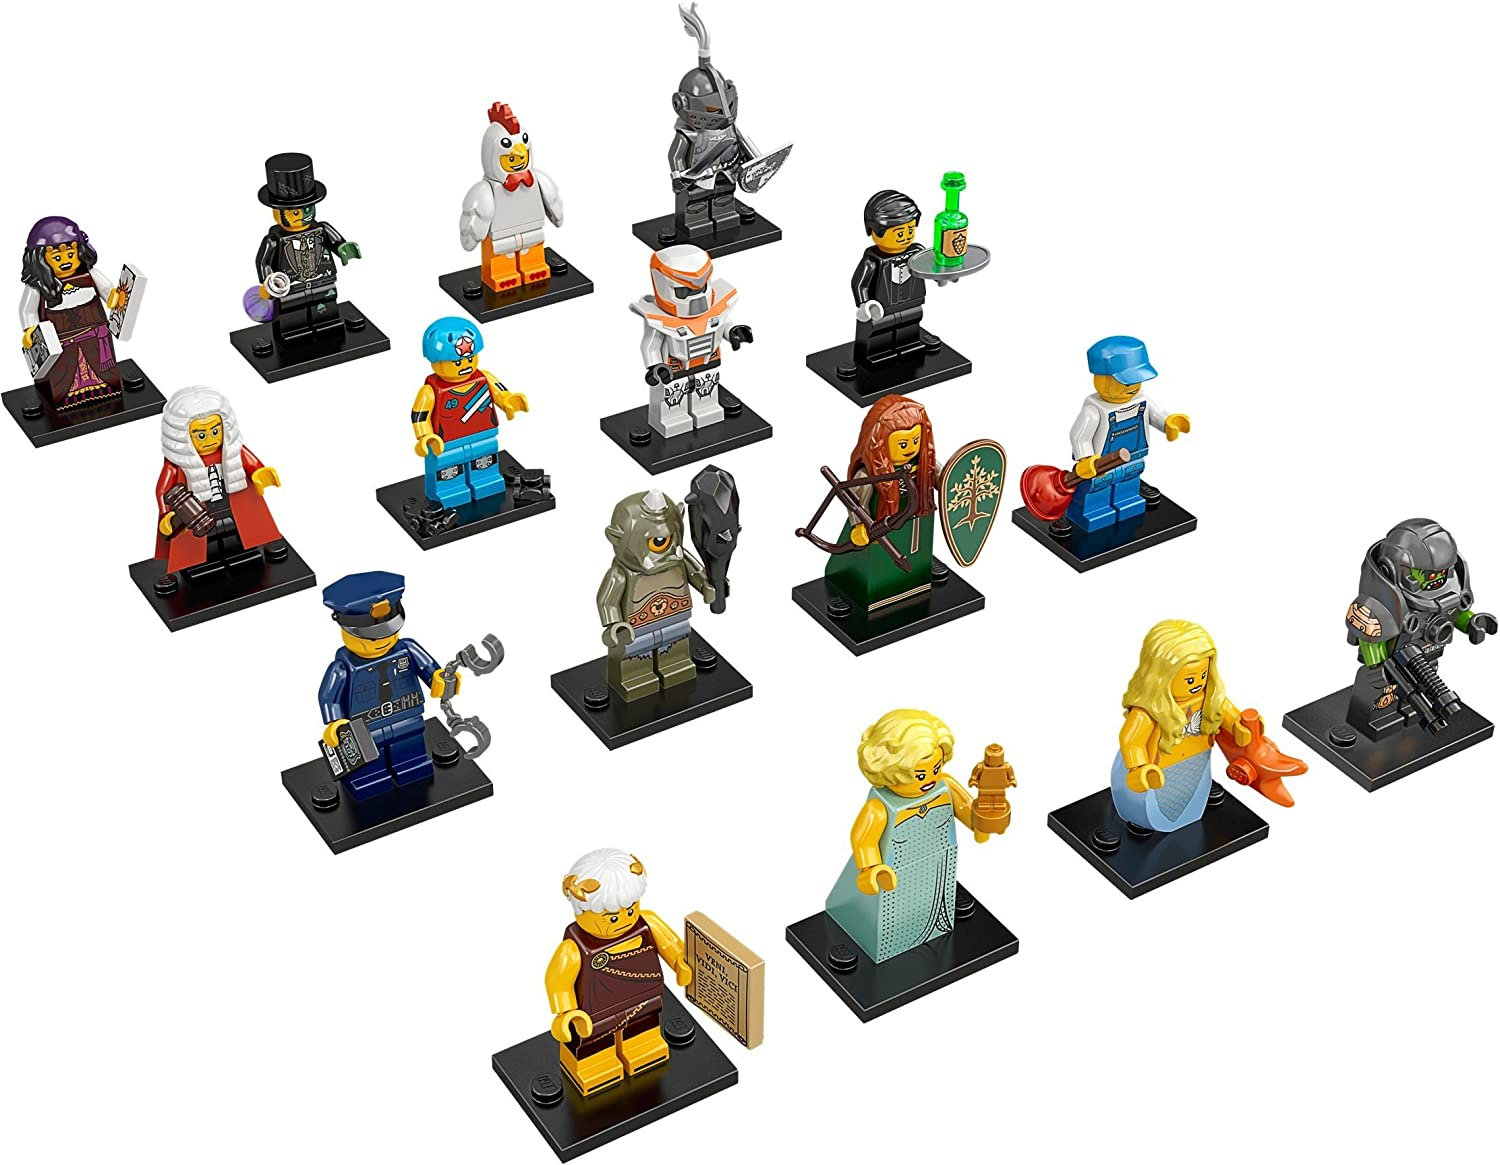 71000 Lego minifigures series 9 complete set of 16 Minifigs